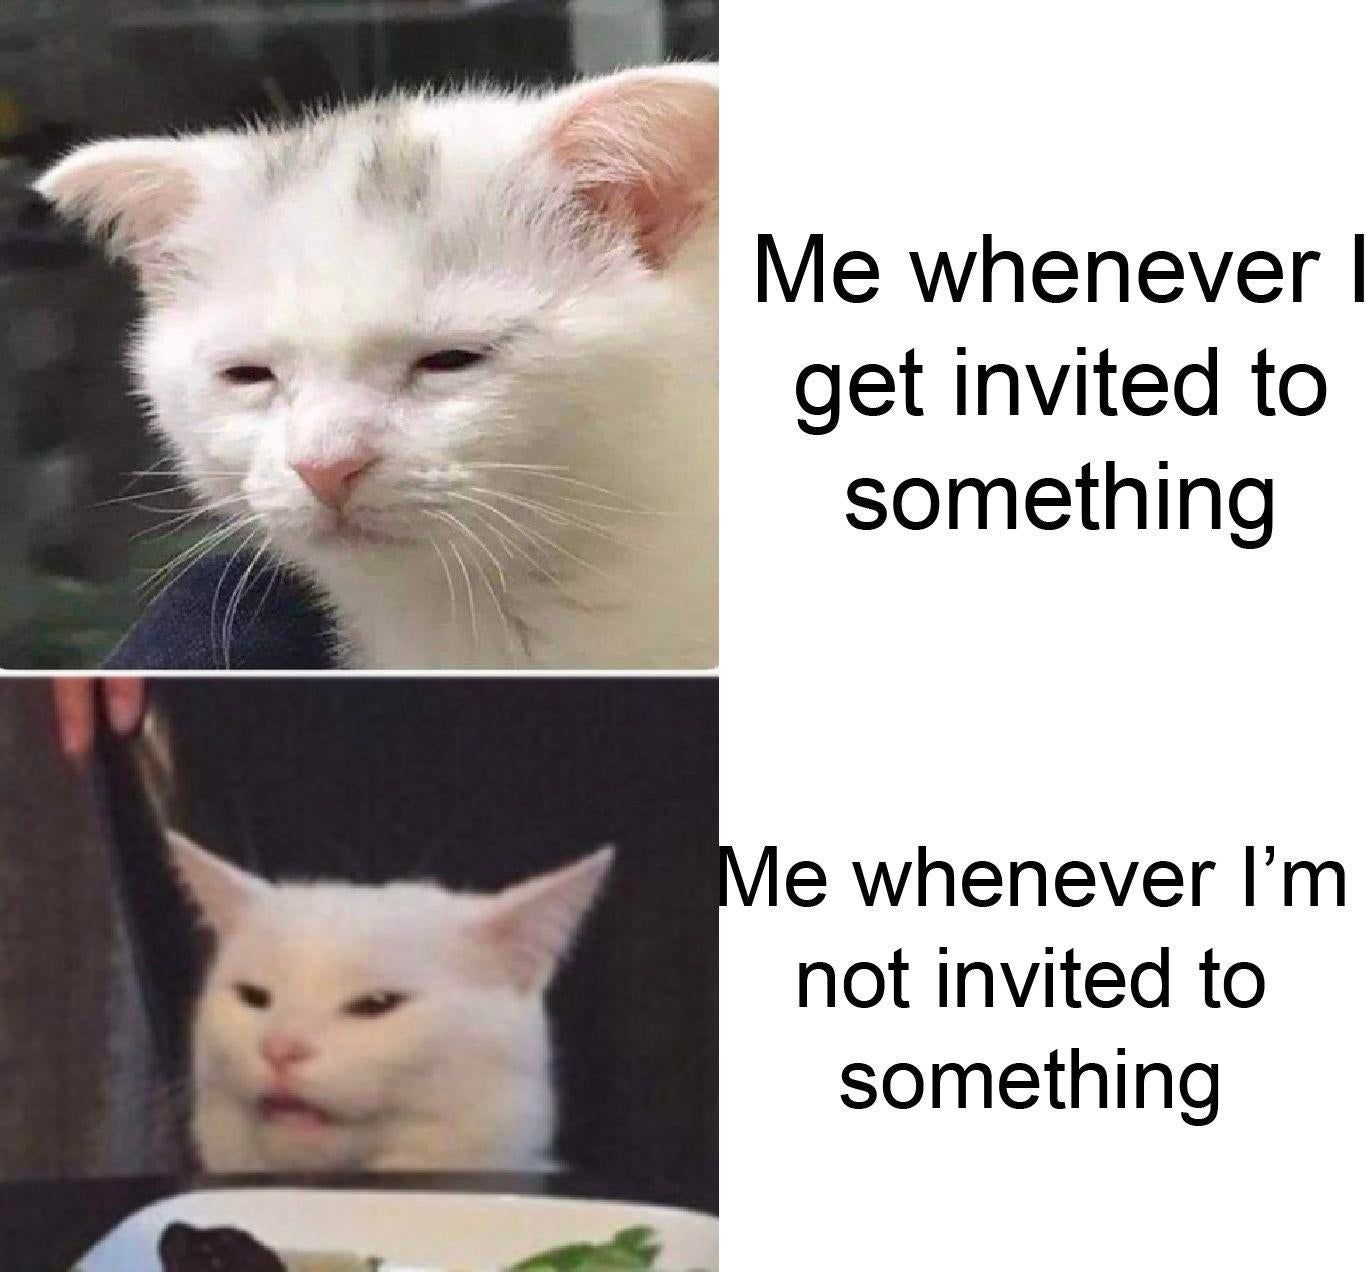 I'd rather be invited than not getting an invite at all